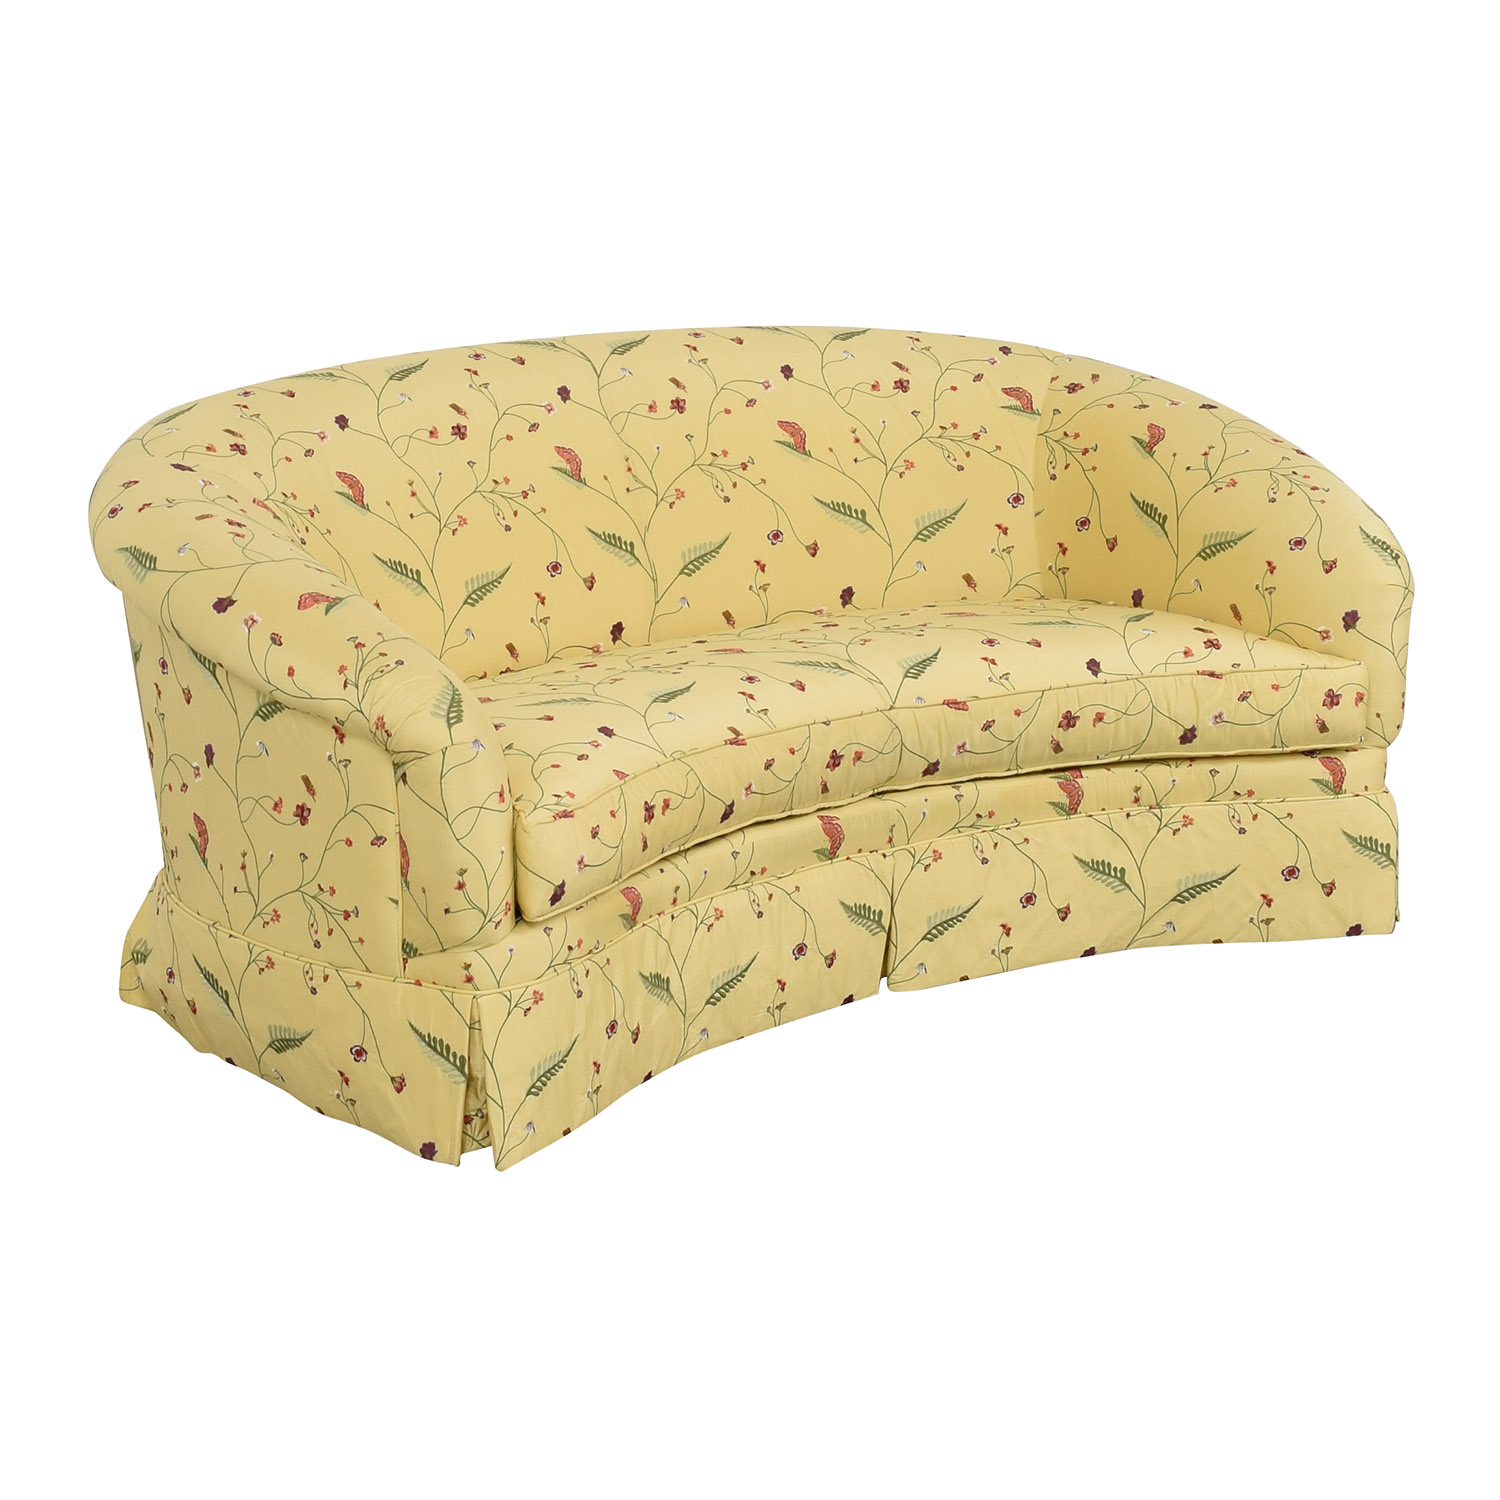 Drexel Heritage Drexel Heritage Chinoiserie Curved Sofa dimensions